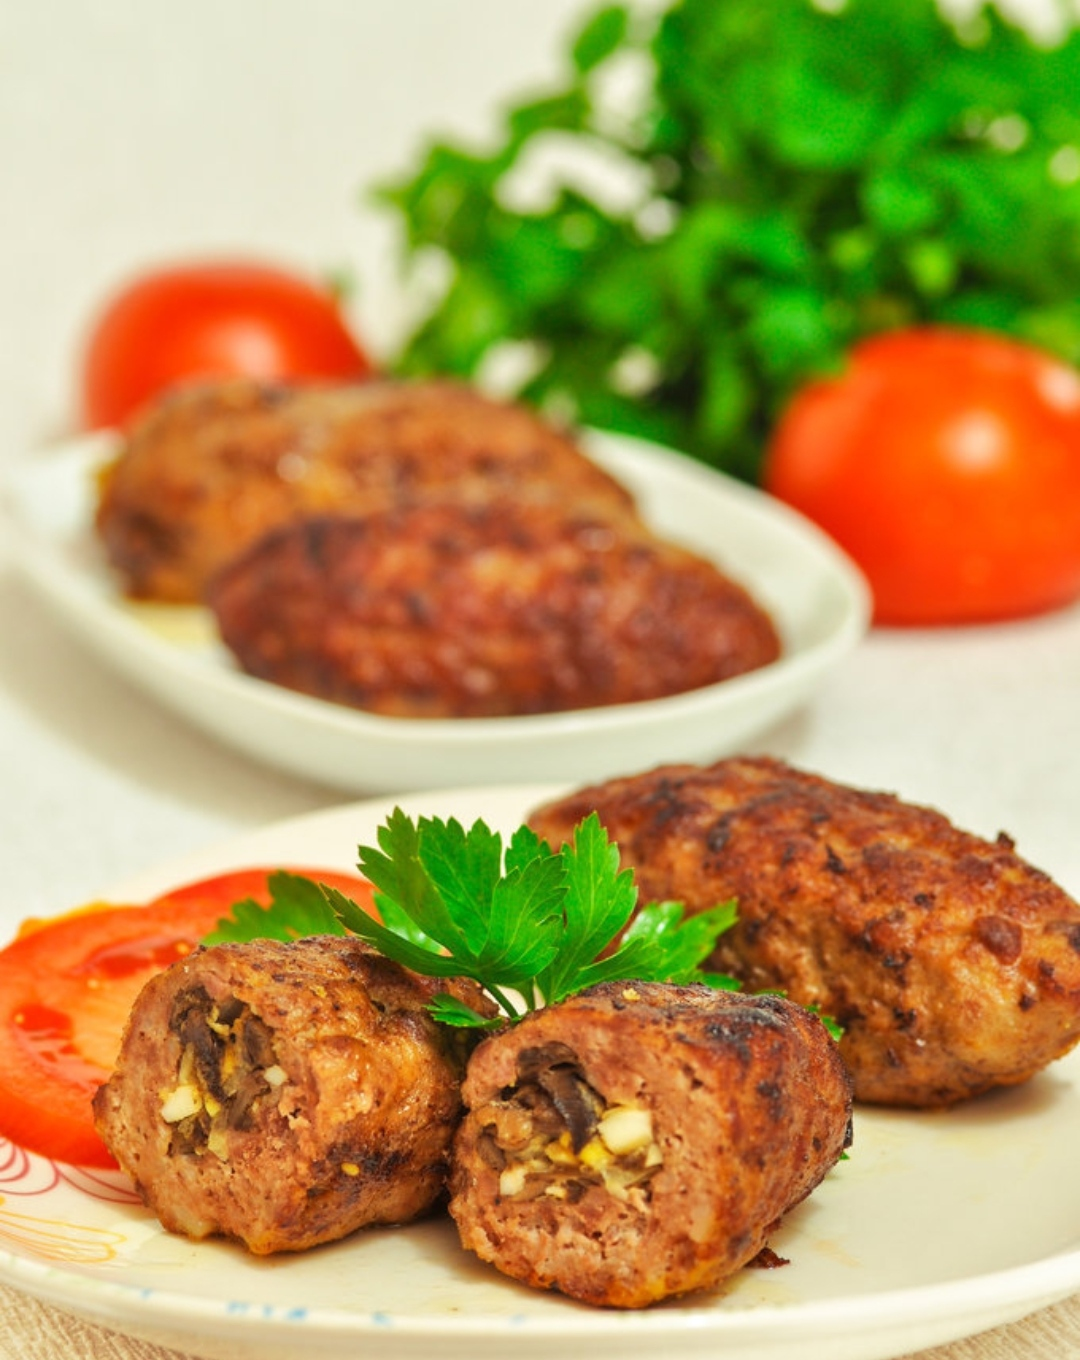 Zrazy with mushrooms, onions and eggs